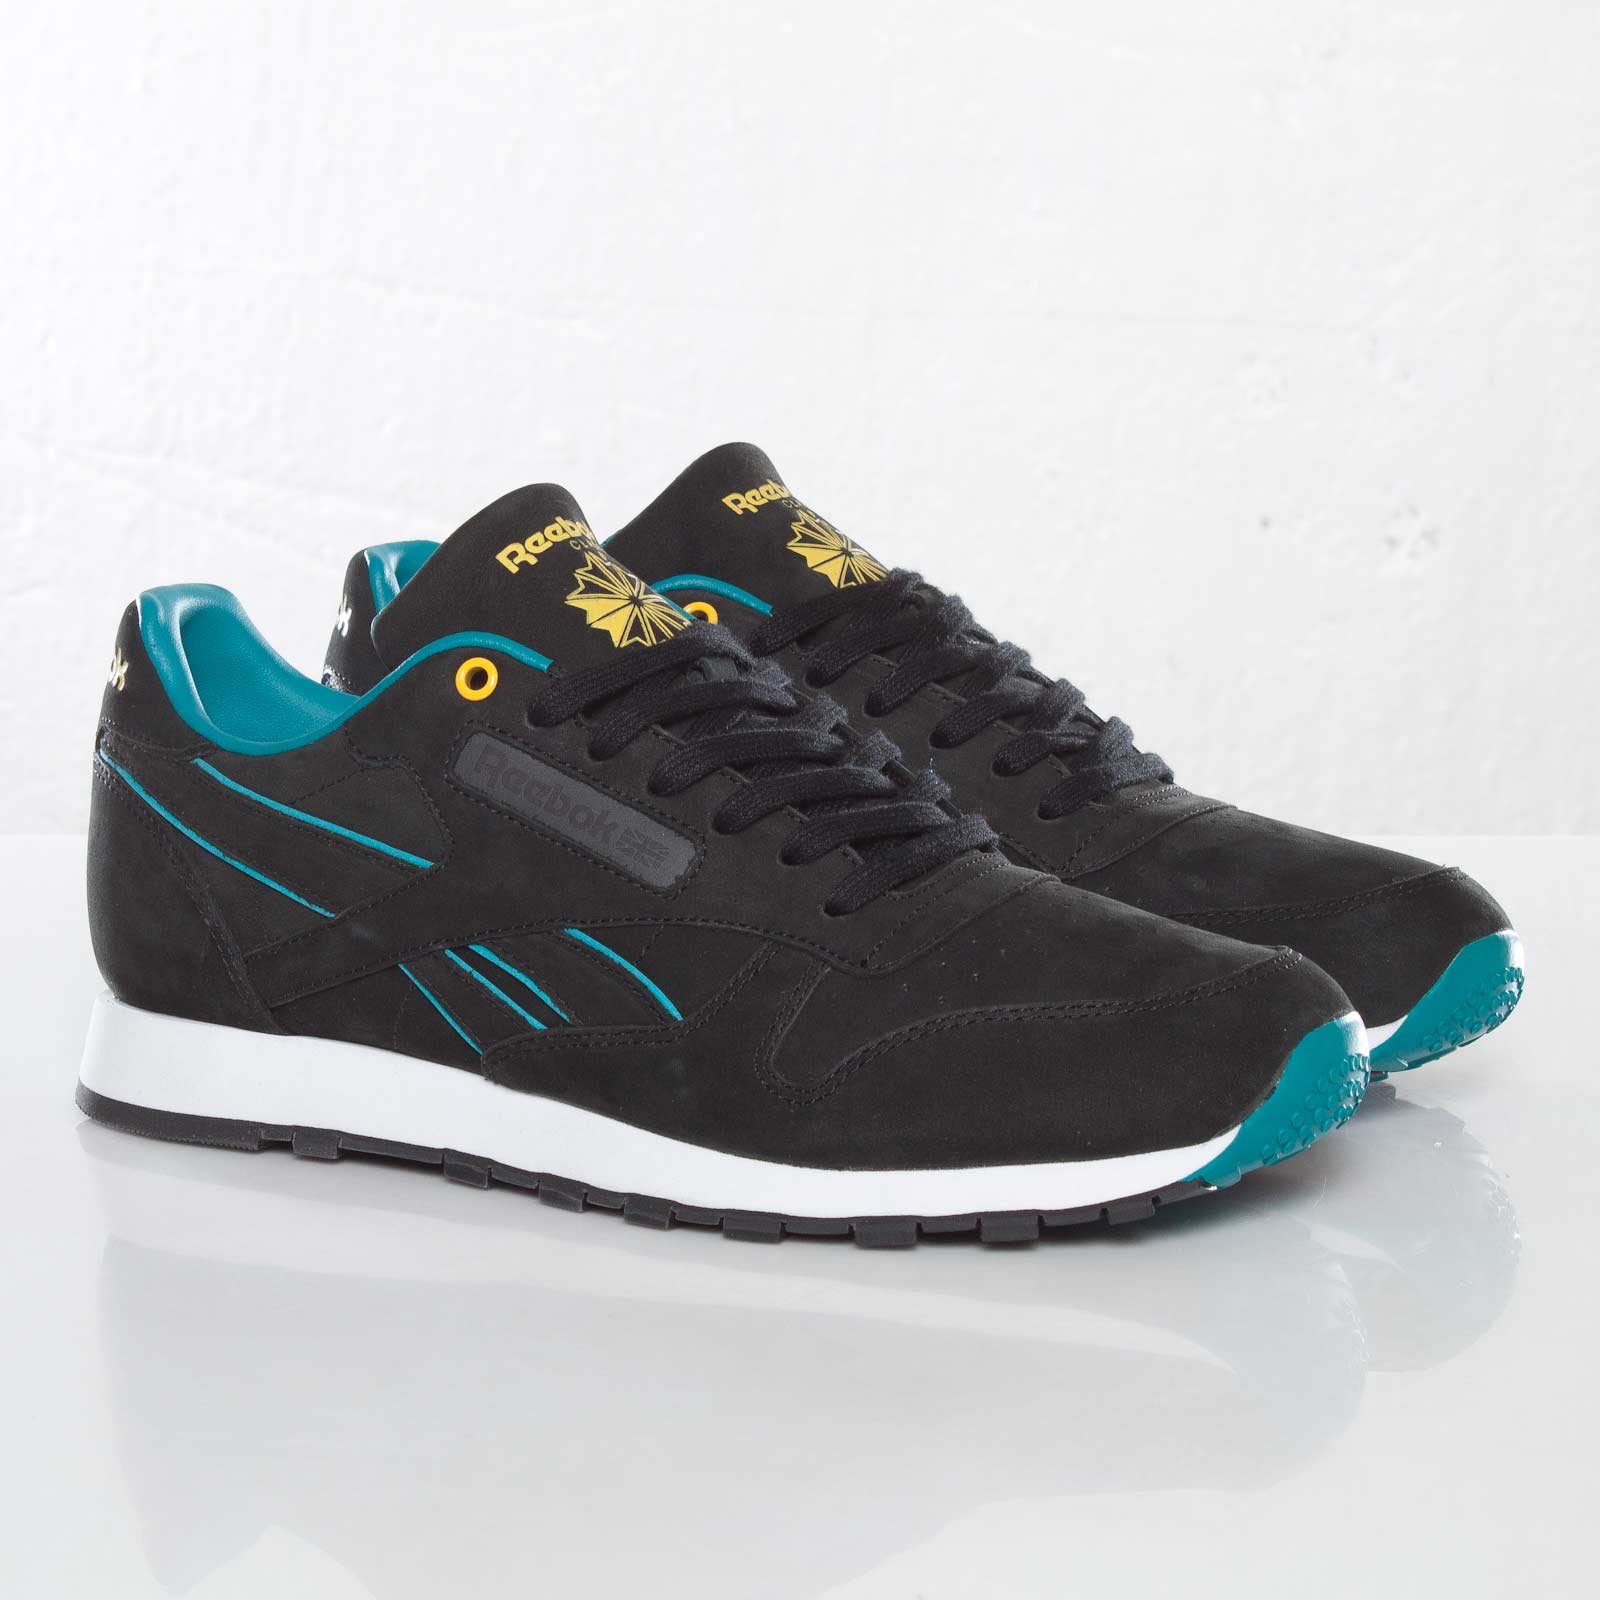 official photos 769c8 3eee4 Reebok Classic Leather Lux